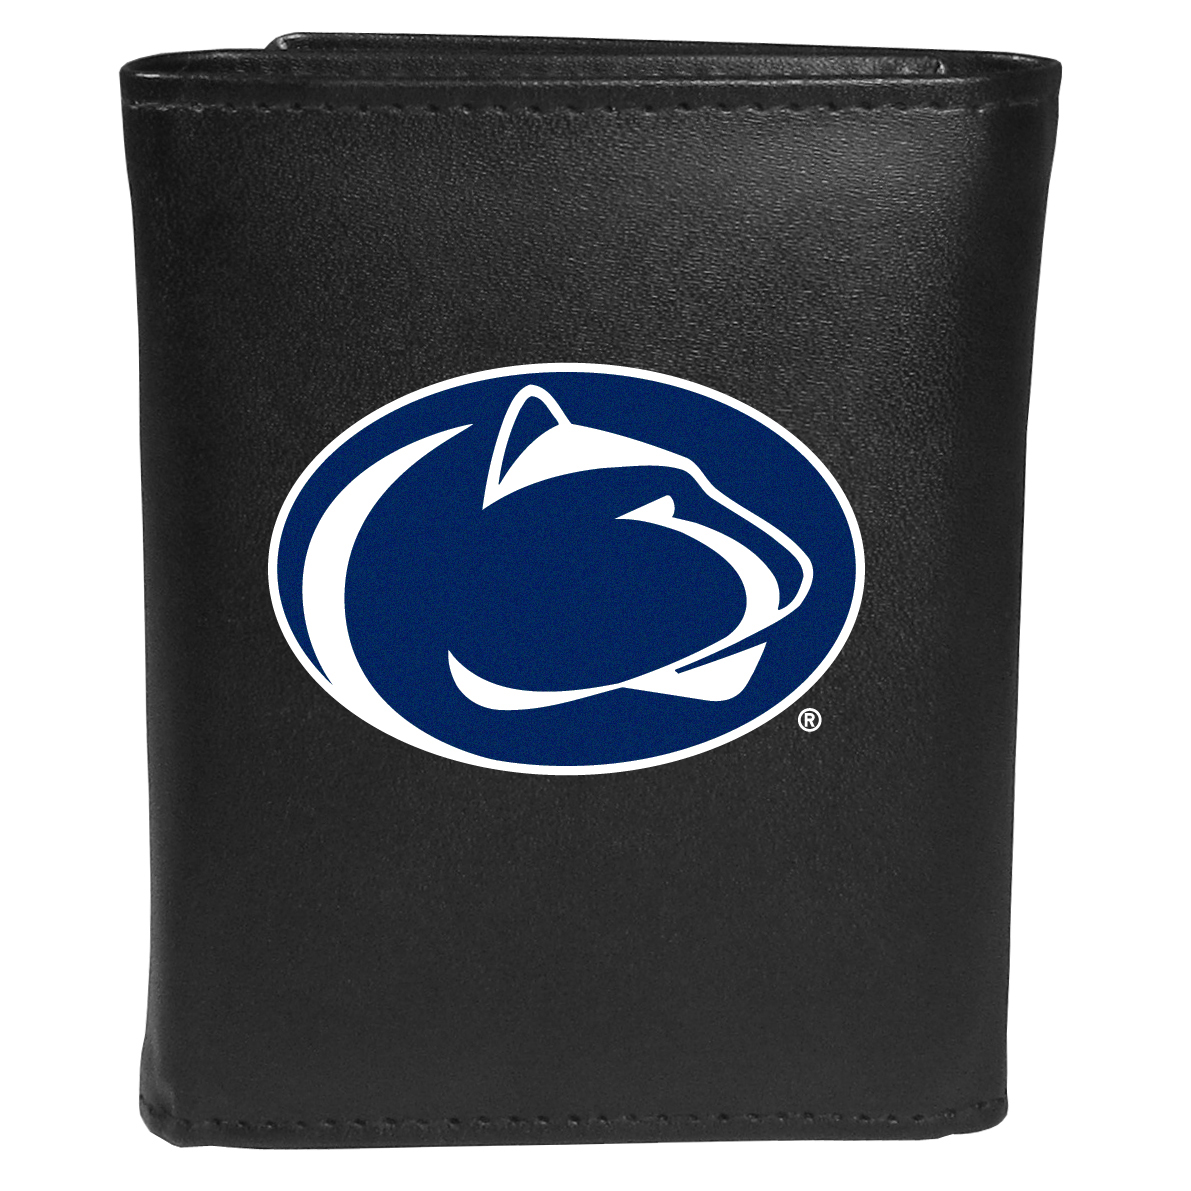 Penn St. Nittany Lions Tri-fold Wallet Large Logo - Sports fans do not have to sacrifice style with this classic tri-fold wallet that sports thePenn St. Nittany Lions?extra large logo. This men's fashion accessory has a leather grain look and expert craftmanship for a quality wallet at a great price. The wallet features inner credit card slots, windowed ID slot and a large billfold pocket. The front of the wallet features an extra large printed team logo.